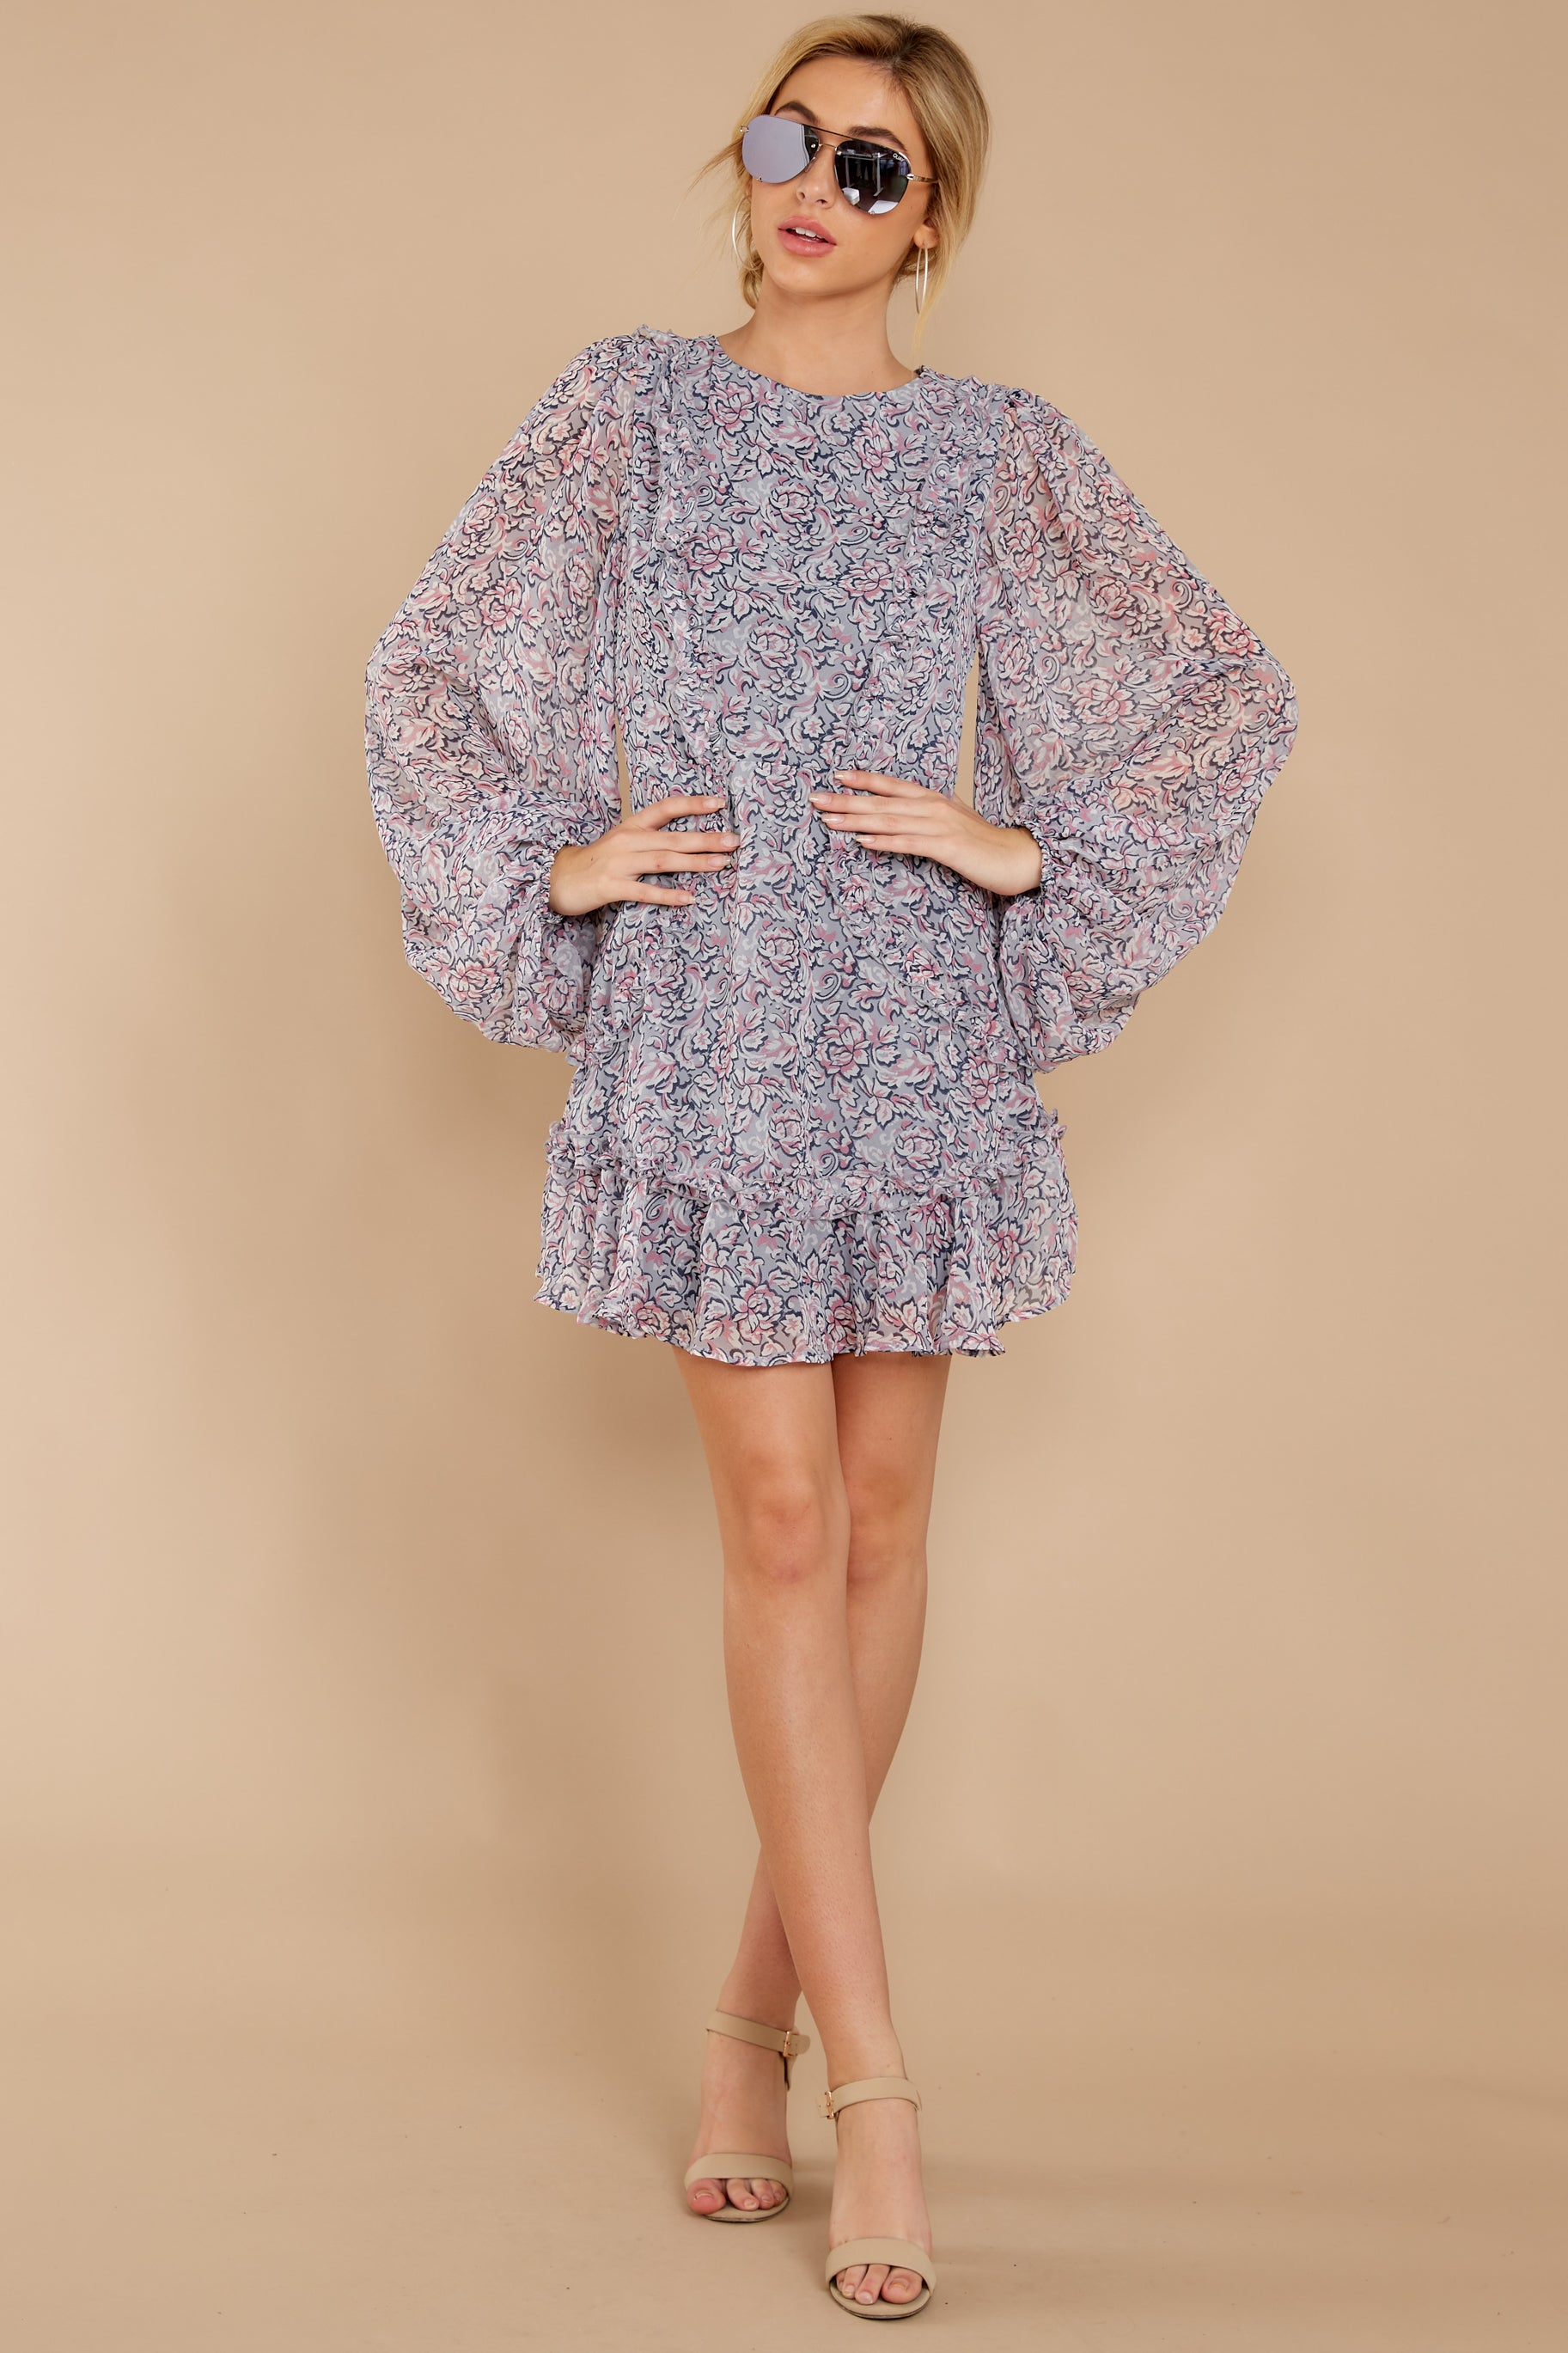 Timeless Grace Pink Multi Floral Print Dress